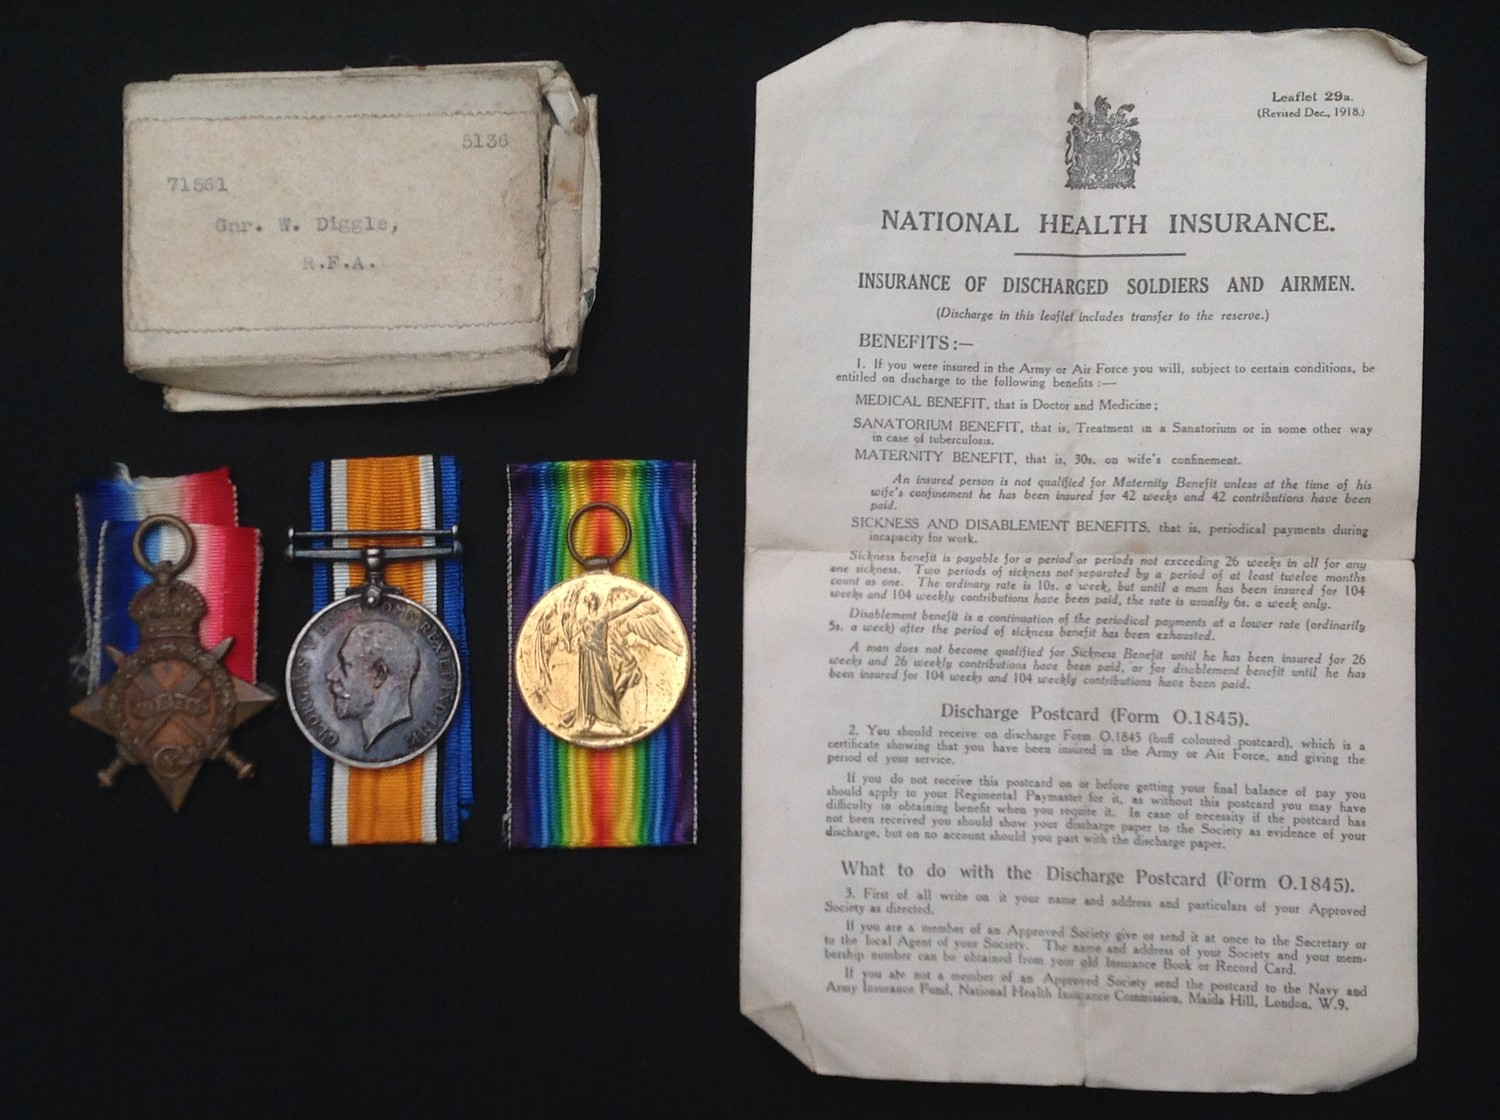 WW1 British Medal group to 71561 Gnr W Diggle, RFA, comprising of 1914-15 Star, British War Medal